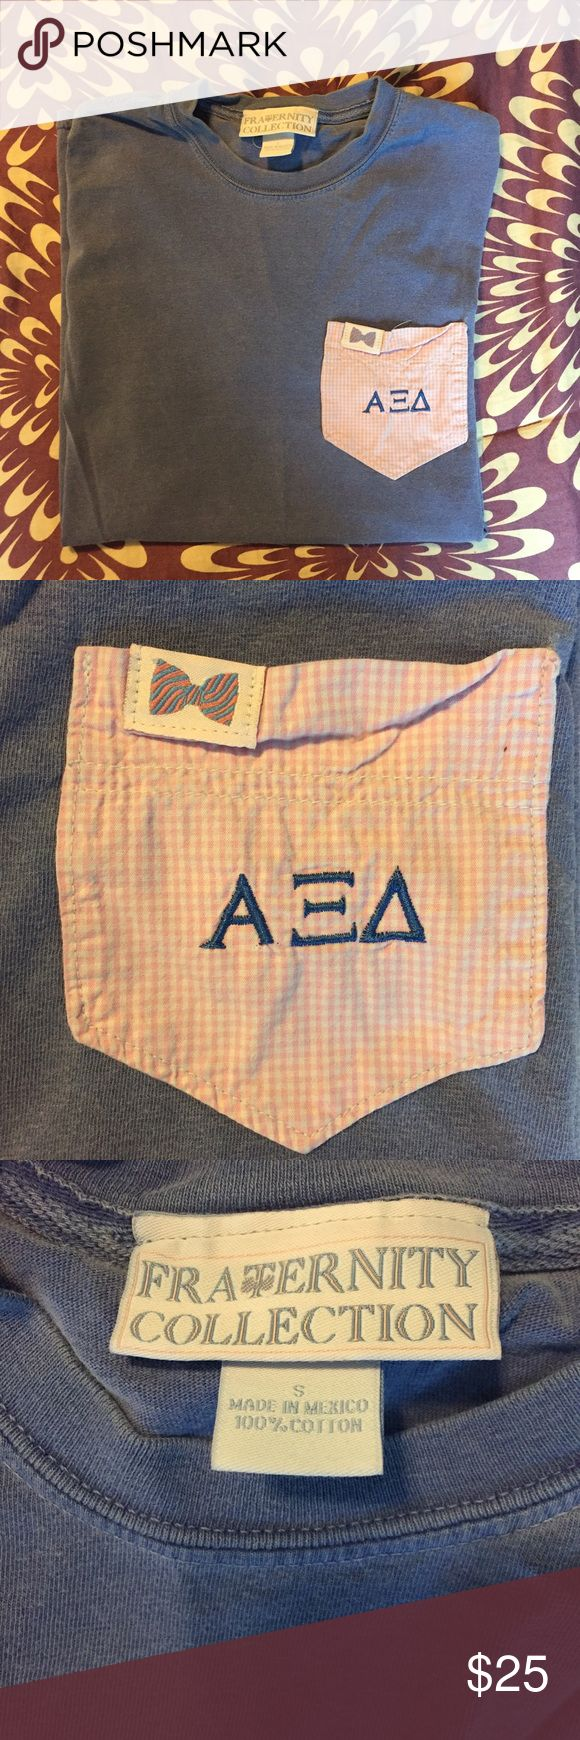 Vineyard Vines Alpha Xi Delta T-Shirt Vineyard Vines fraternity collection T-Shirt in violet. Alpha Xi Delta sorority letters embroidered on pink checkered pocket. Excellent condition! Vineyard Vines Tops Tees - Short Sleeve